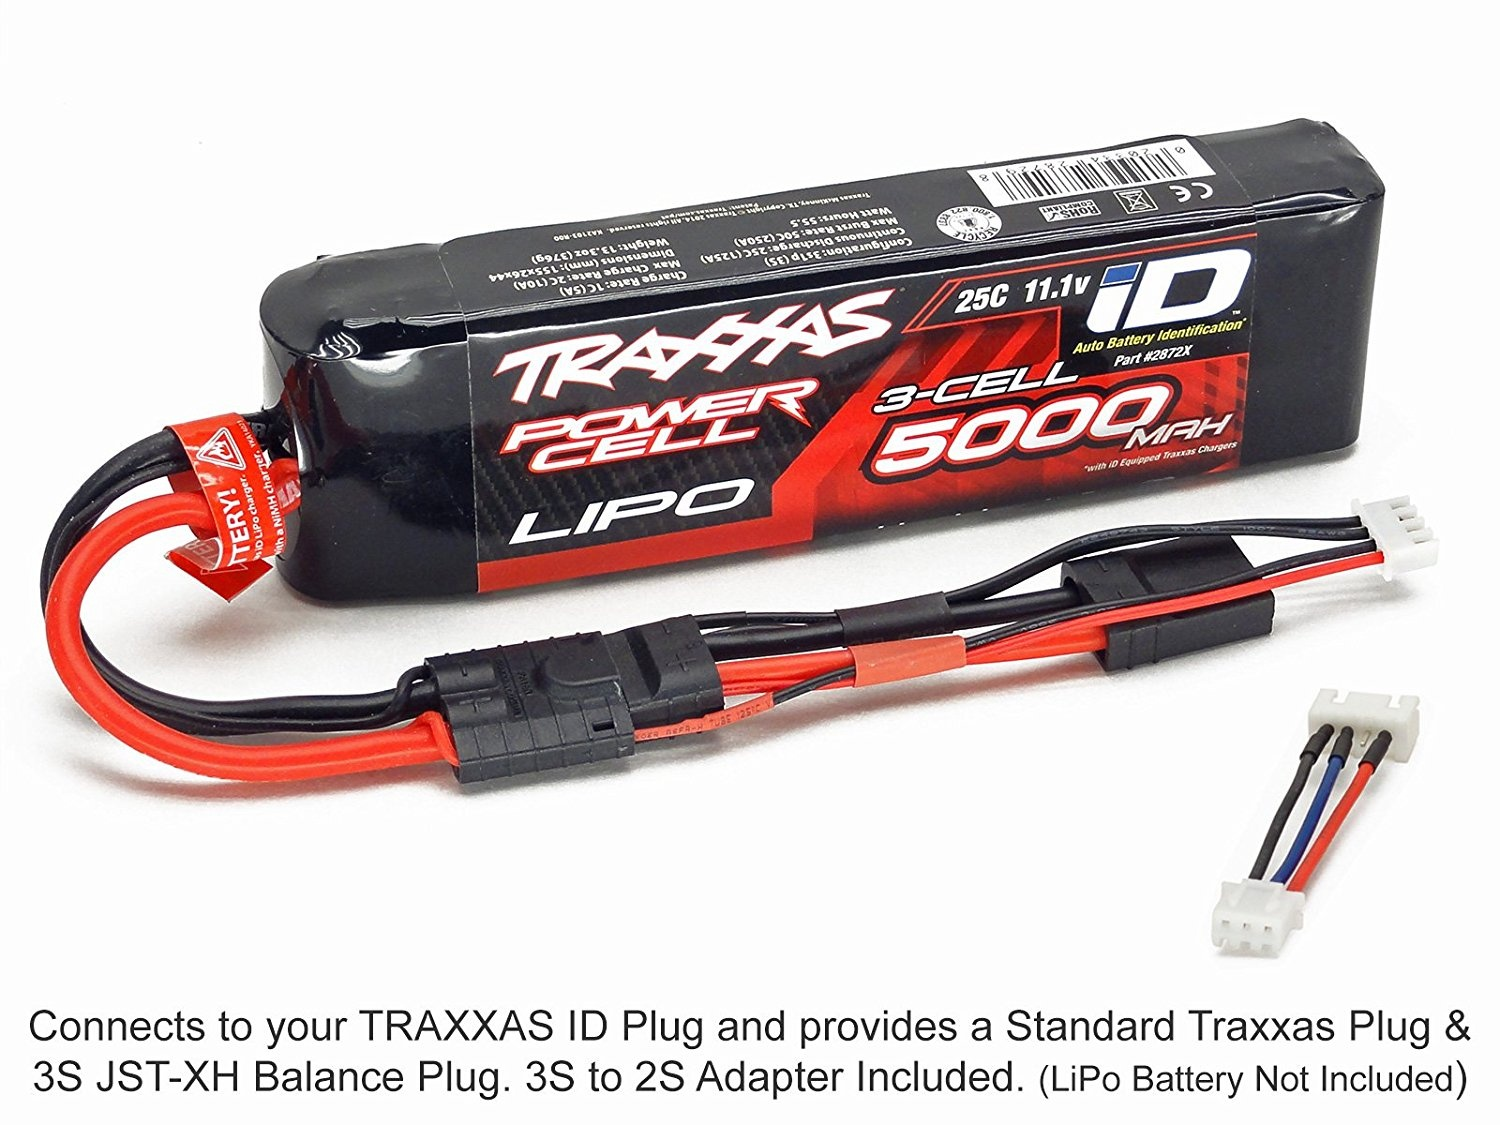 Receiver Pack Plug Heli Drone Mini Quadcopter GT Power Traxxas ID Charger Adapter: Traxxas Female to JST Wires Cables Leads Adapter